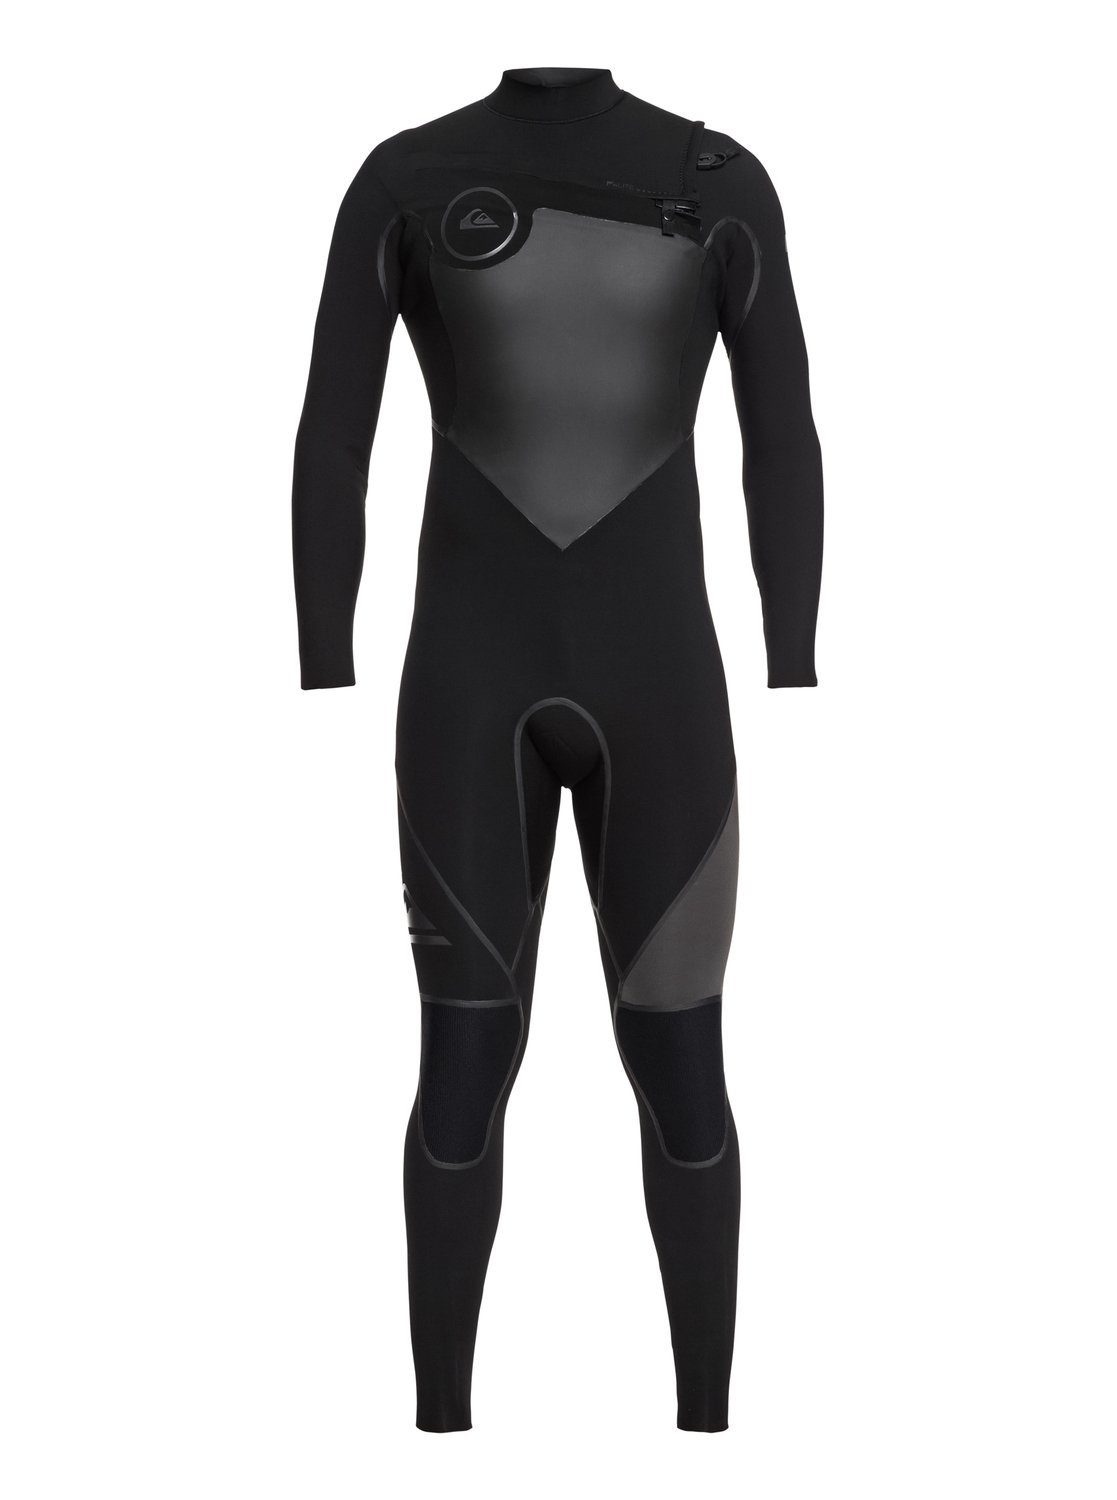 bd3270a5d9 Best Wetsuits For SUP Surfing and Cold Water SUPing